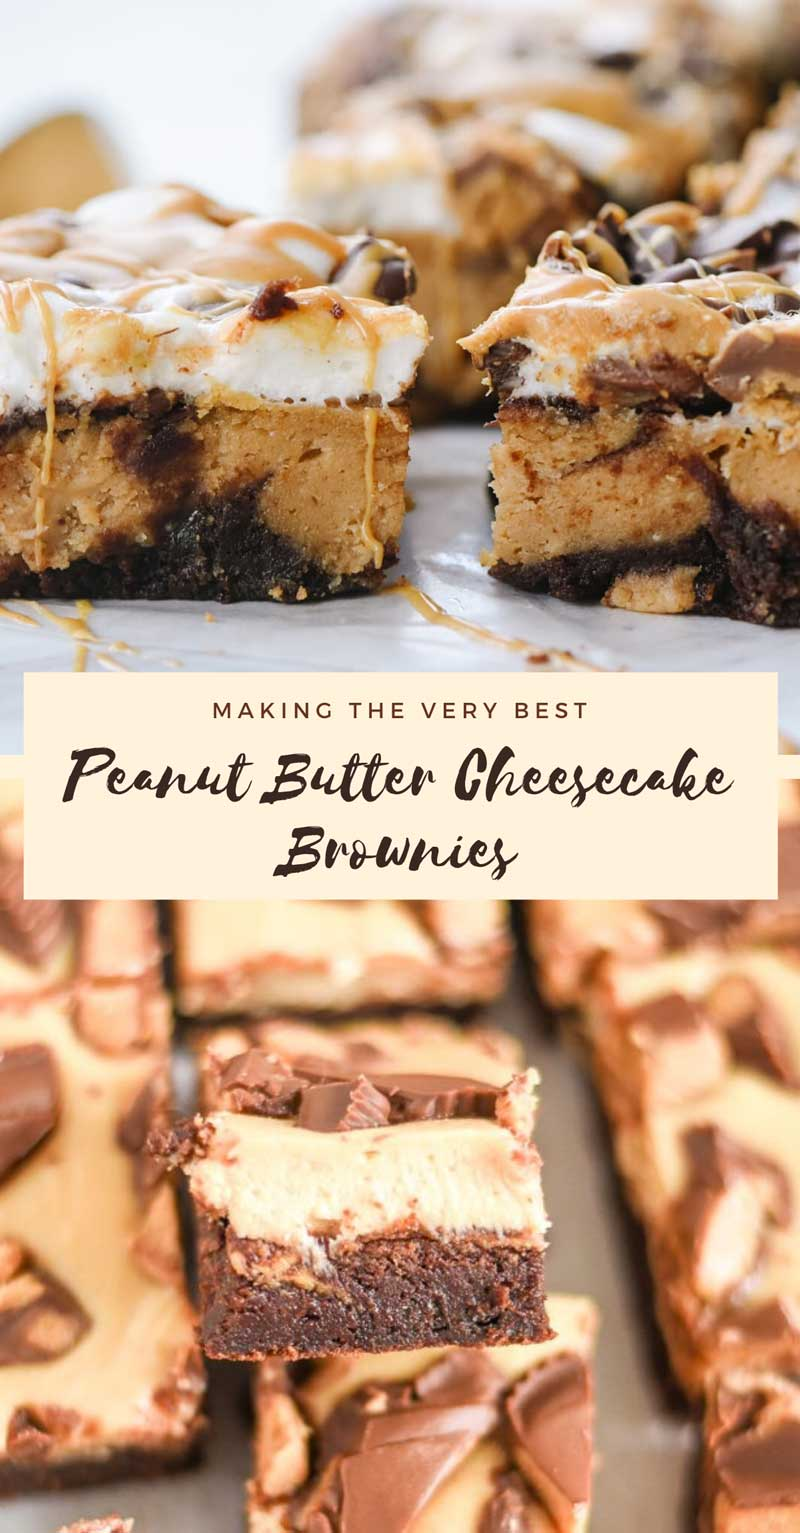 Peanut Butter Cheesecake Brownies Recipes Ideas Pinterest